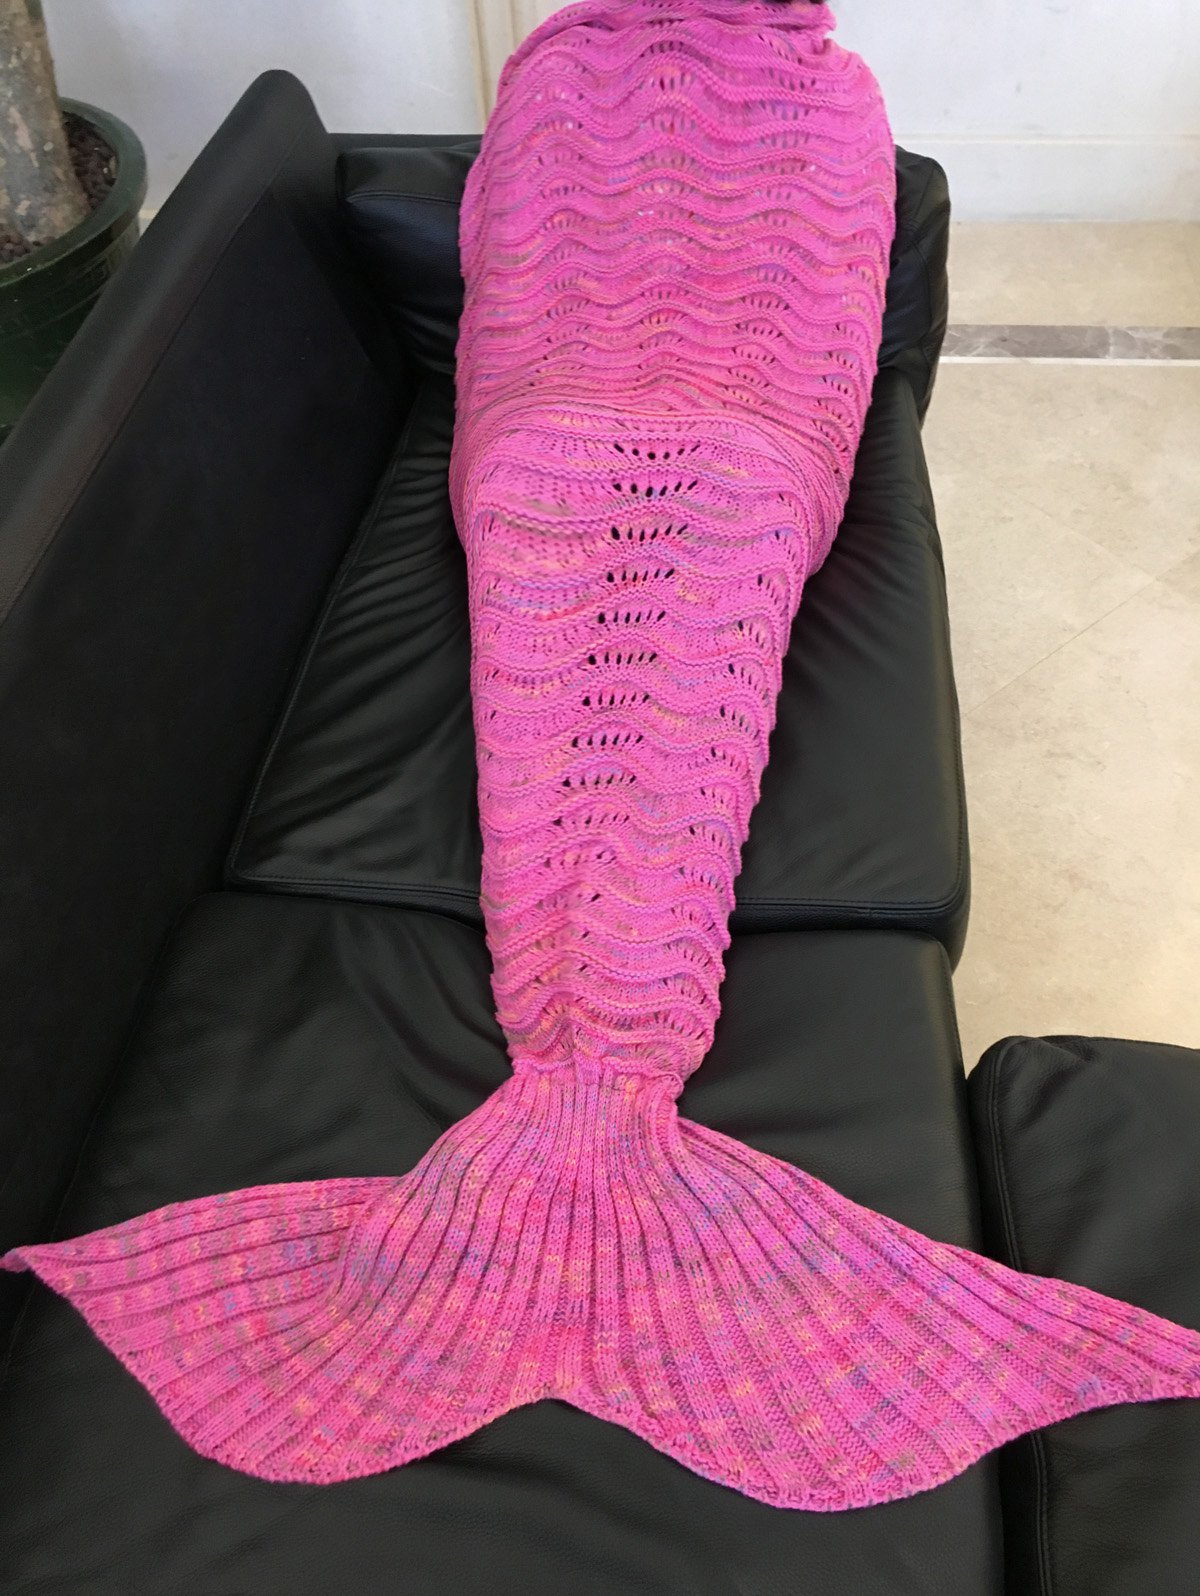 Handmade Knitted Mermaid Tail Design Blanket - ROSE RED